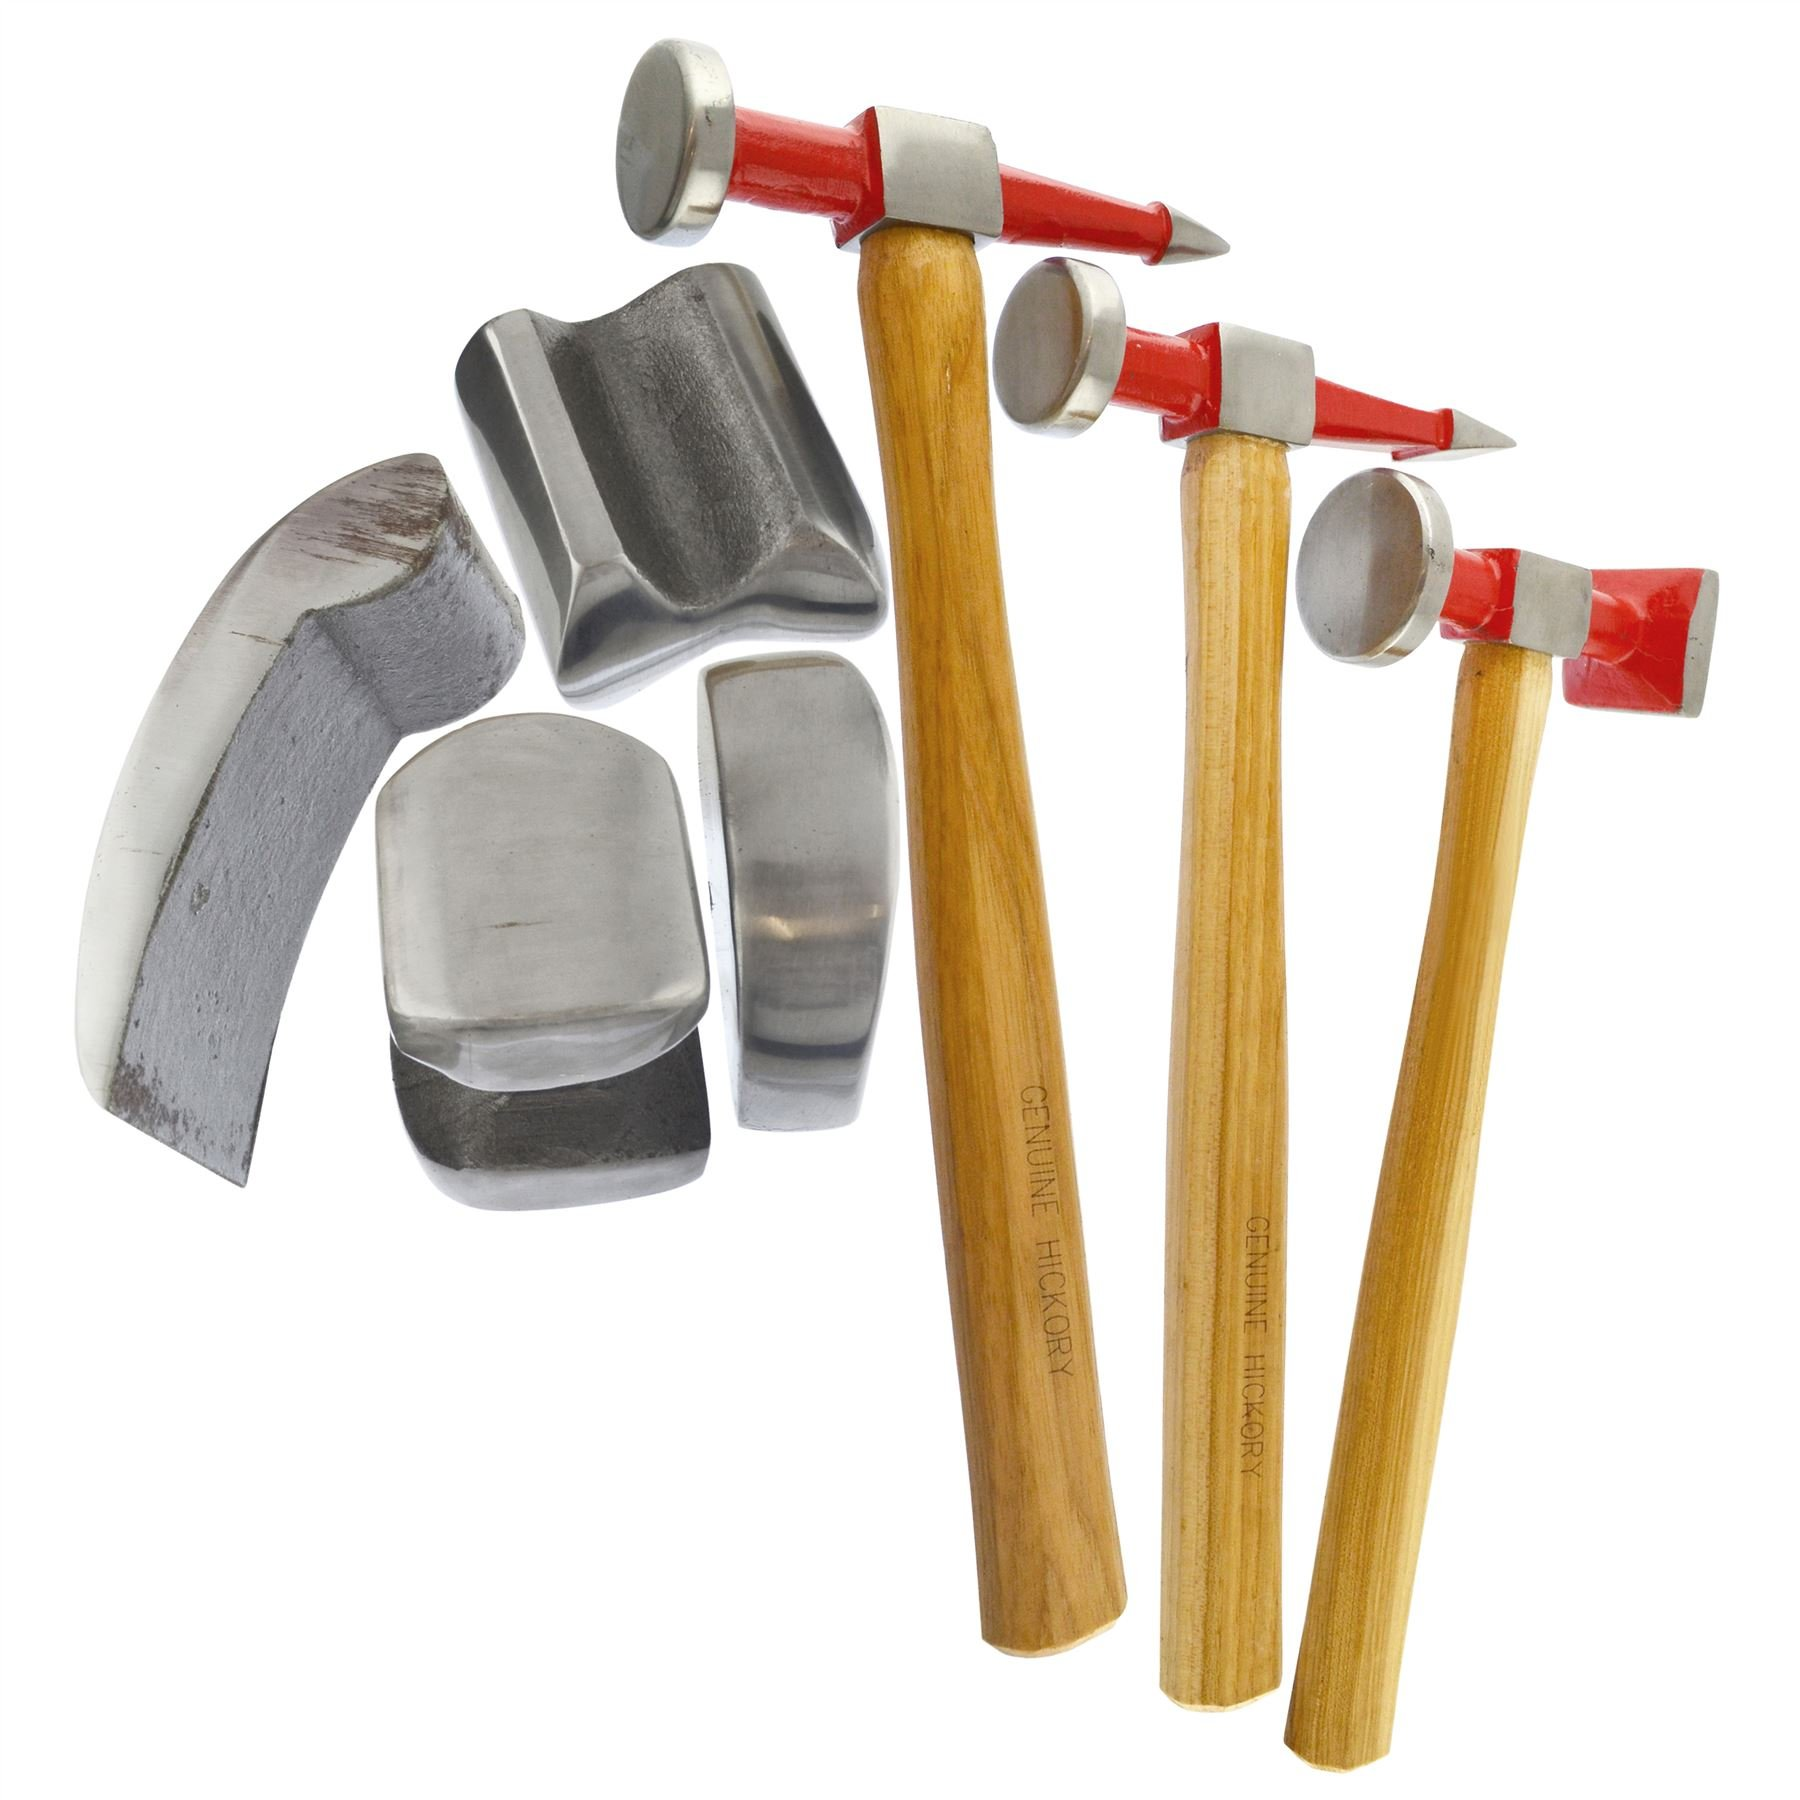 AB Tools-Neilsen Auto Body Repair Kit Panel Beating Hickory Hammers Dollies Shrinking 7pc AN021 by AB Tools-Neilsen (Image #1)